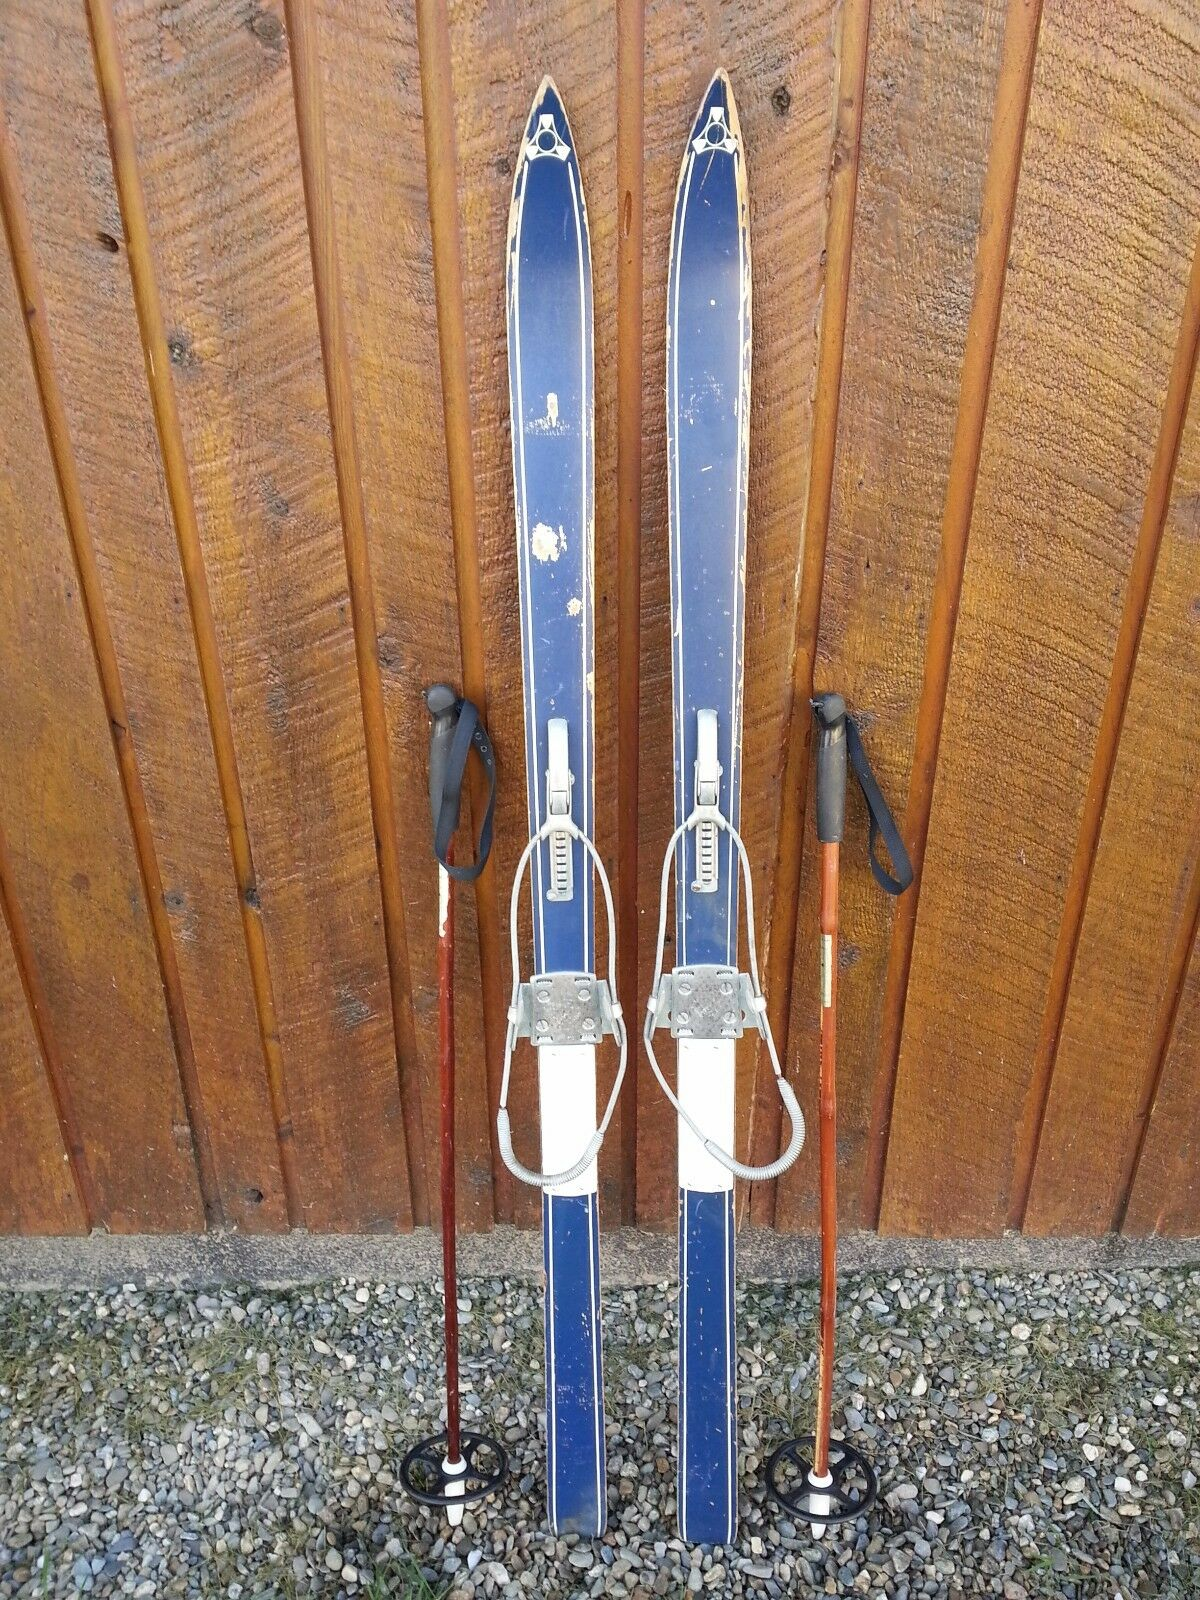 Vintage Wooden 53   Long Skis blueE Finish with Cable Bindings + Bamboo Poles  simple and generous design